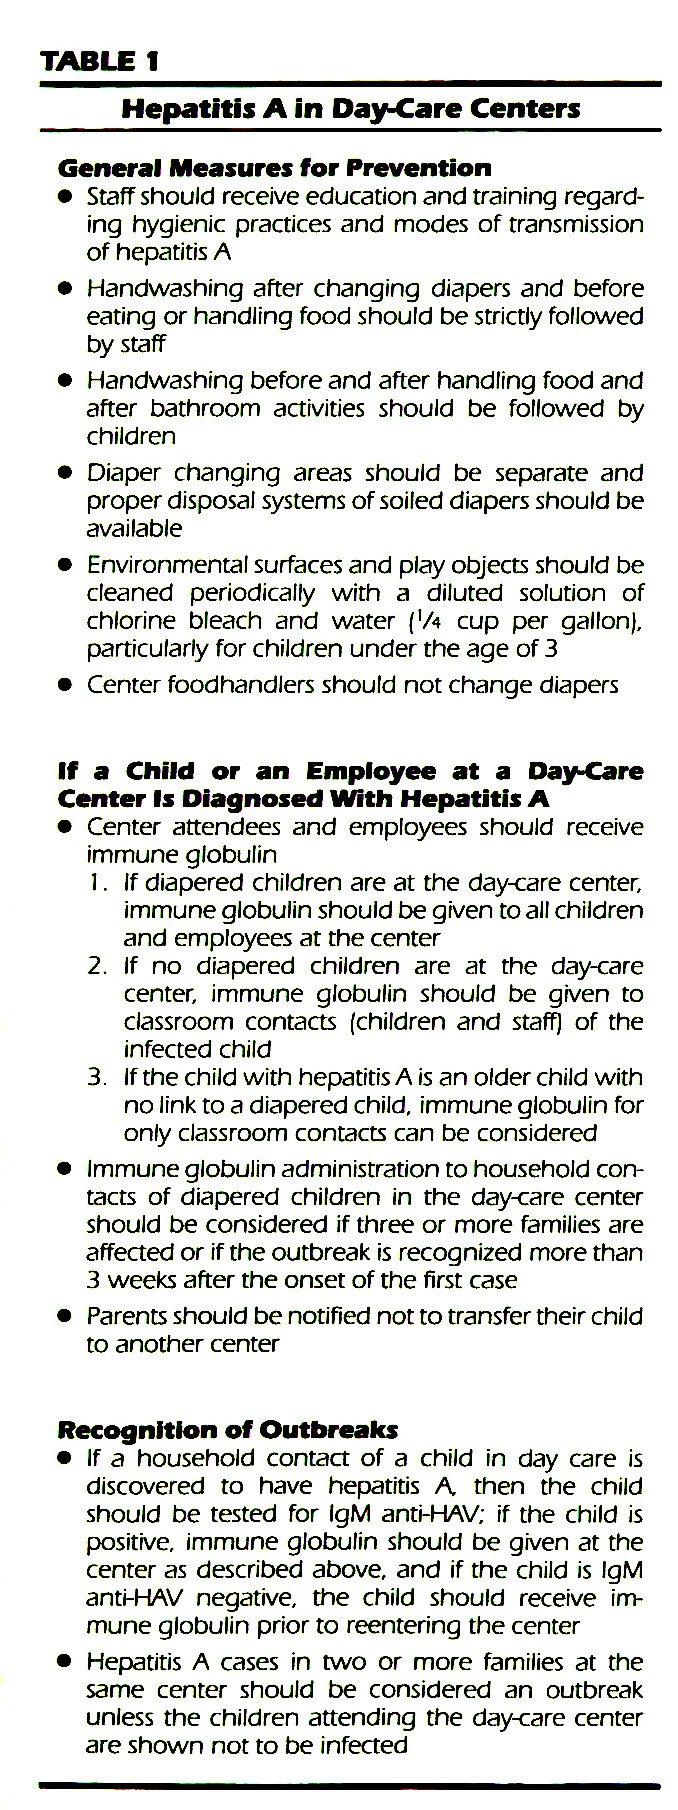 TABLEIHepatitis A in Day-Care Centers